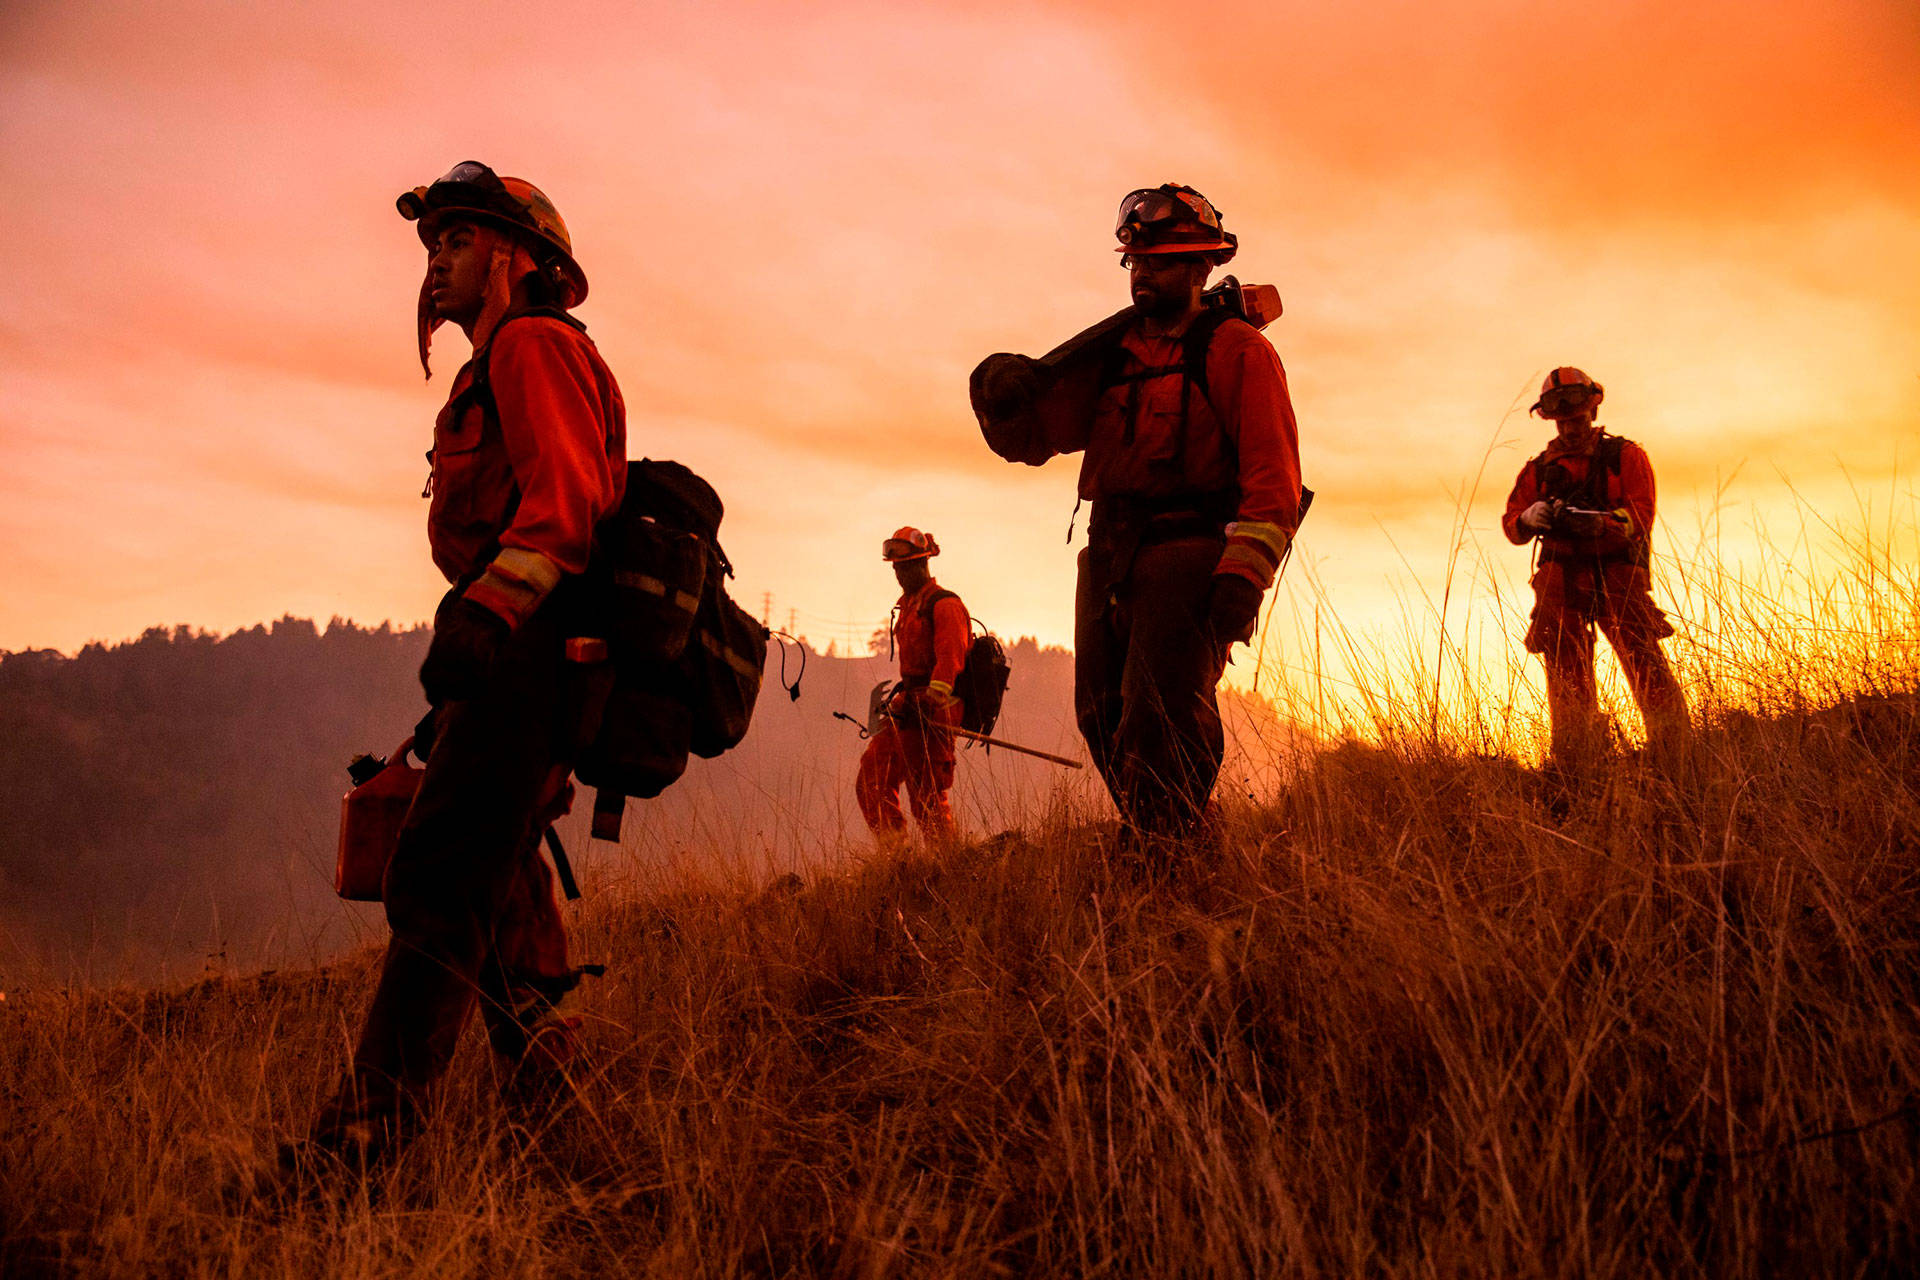 A crew of inmate firefighters make their way to firefighting operations to battle the Kincade Fire in Healdsburg on Oct. 26, 2019. Philip Pacheco/AFP via Getty Images